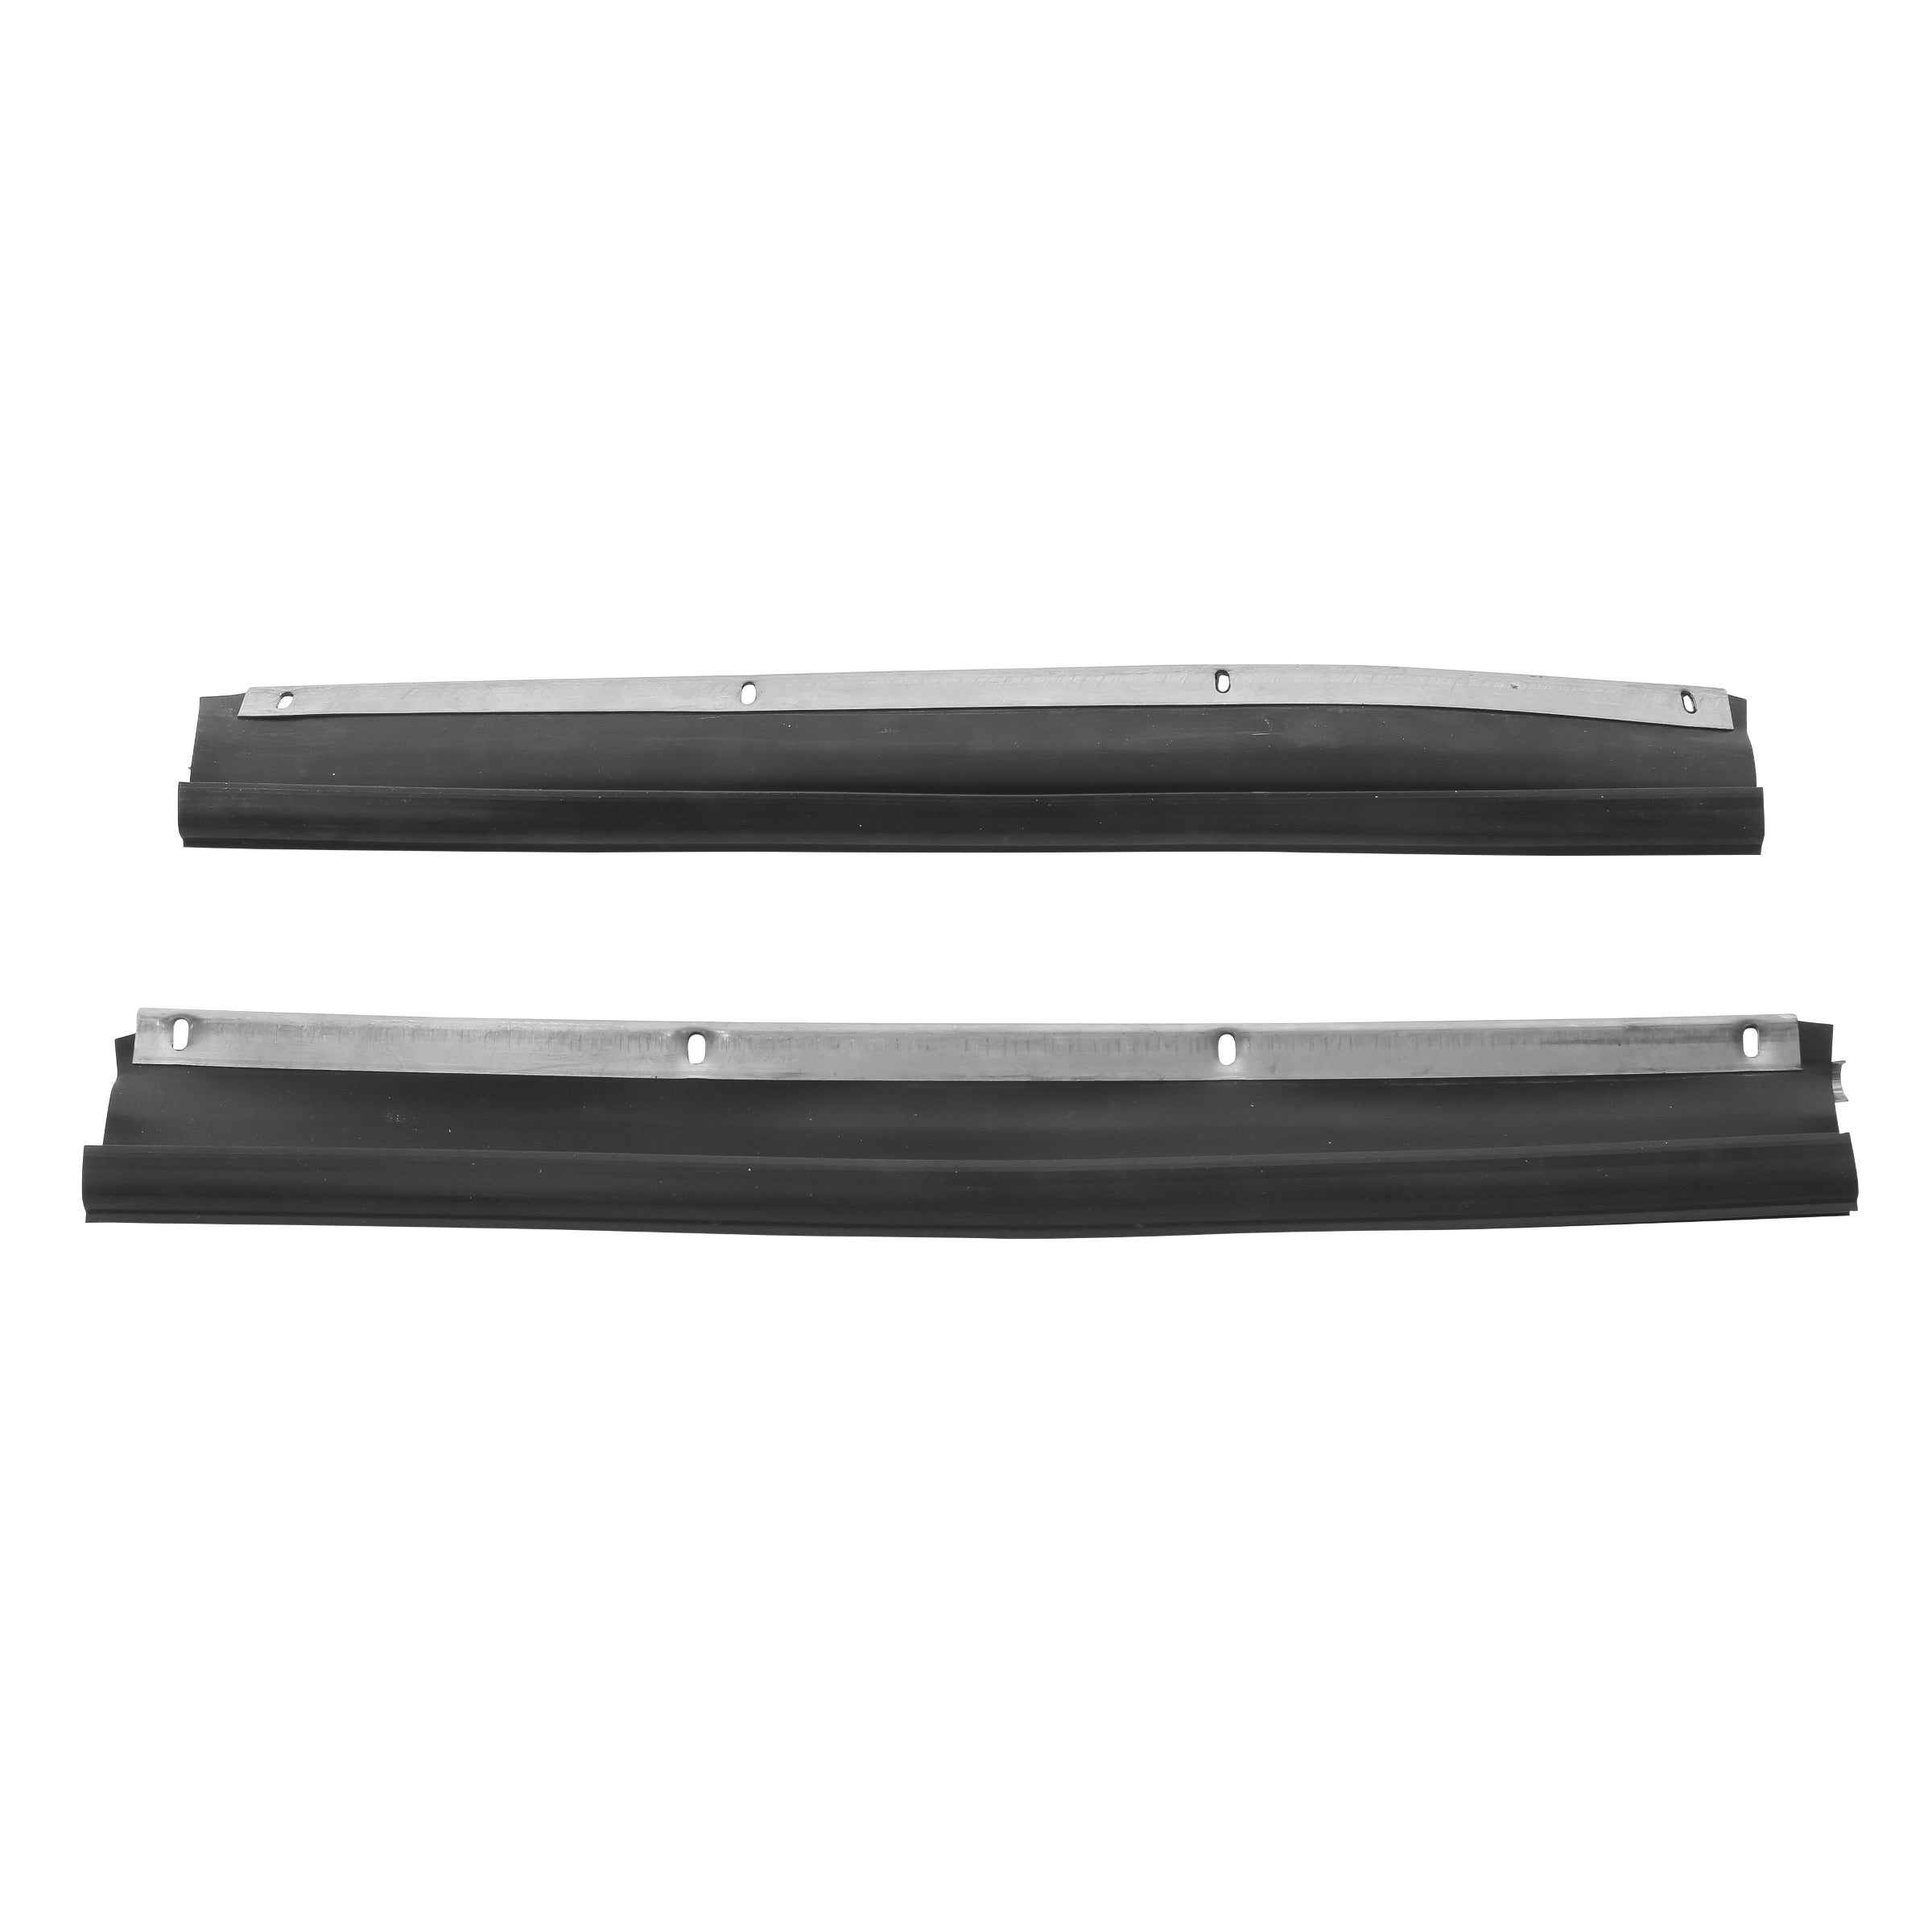 Door Scuff (Sill) Plates • 1940 Ford Fordor (Rear)